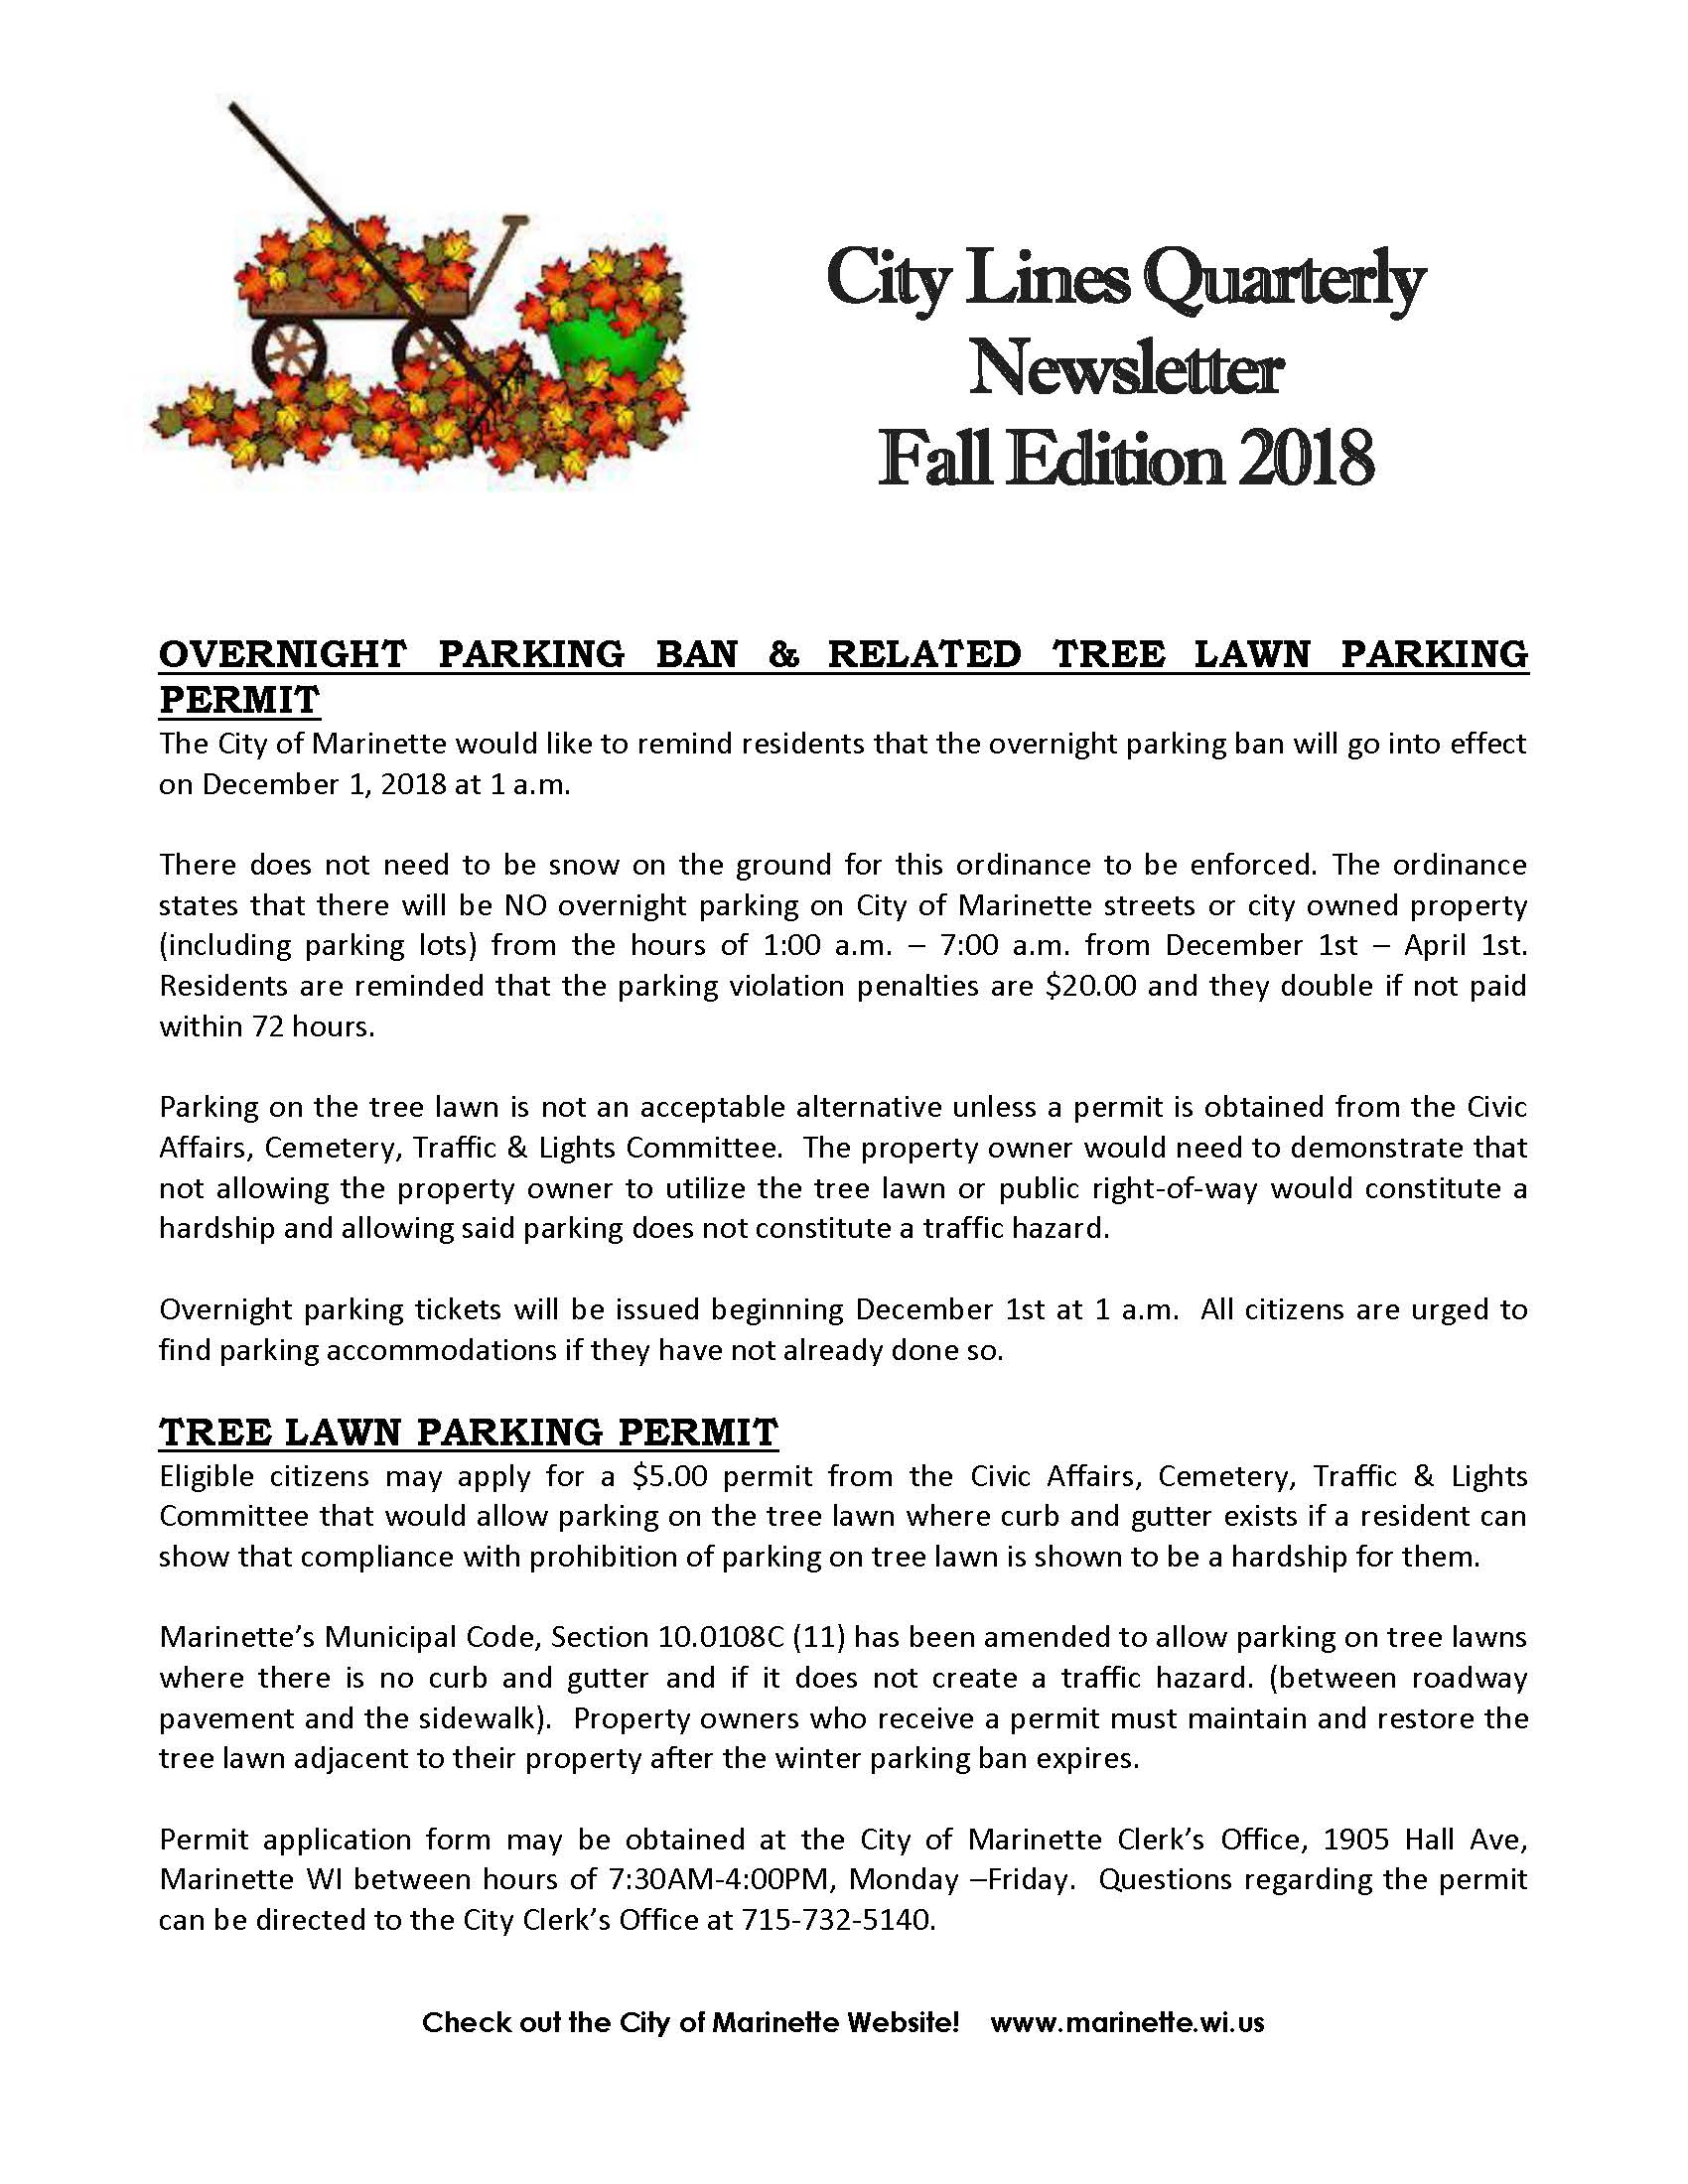 Citylines Fall Edition 2018_Page_1